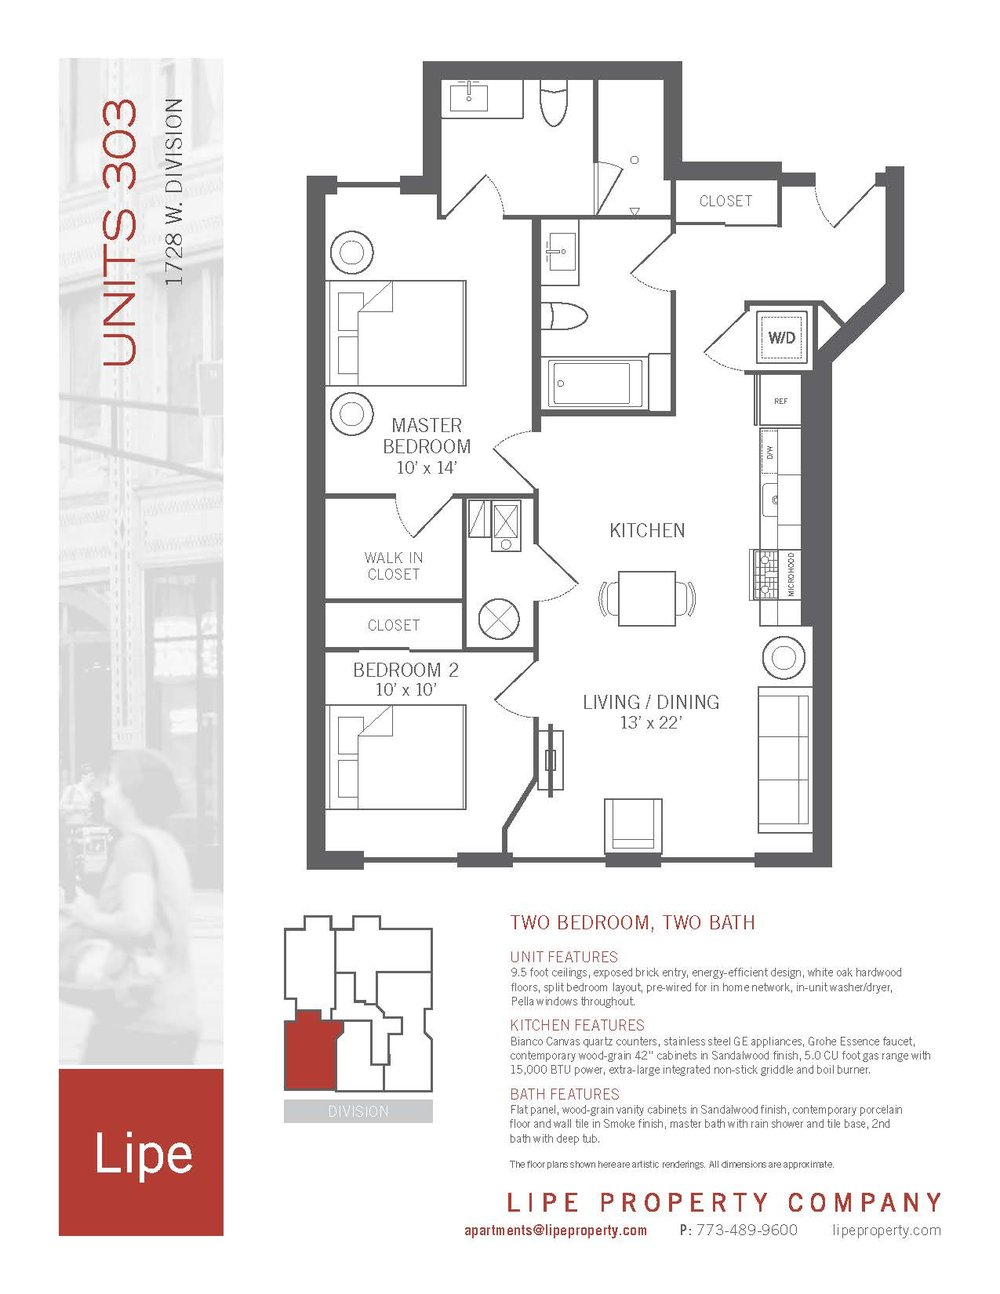 1728-West-Division-303-Floorplan-Chicago-apartment-for-rent.jpg